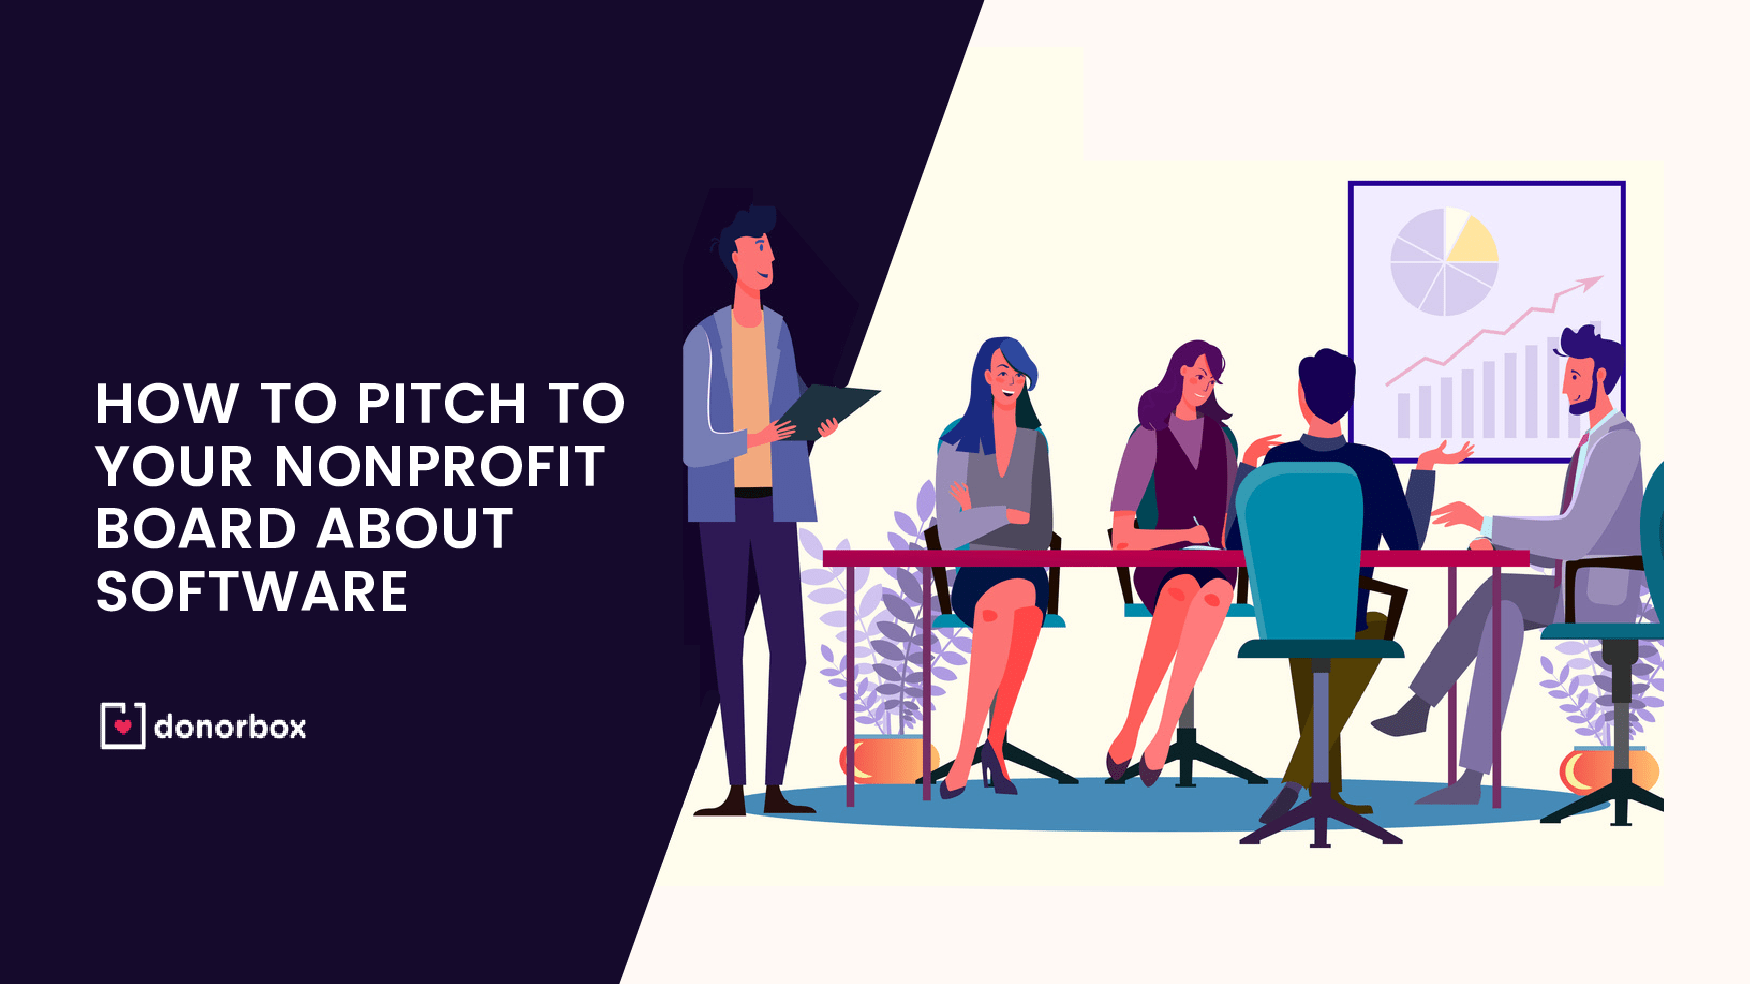 How to Pitch to Your Nonprofit Board About Software